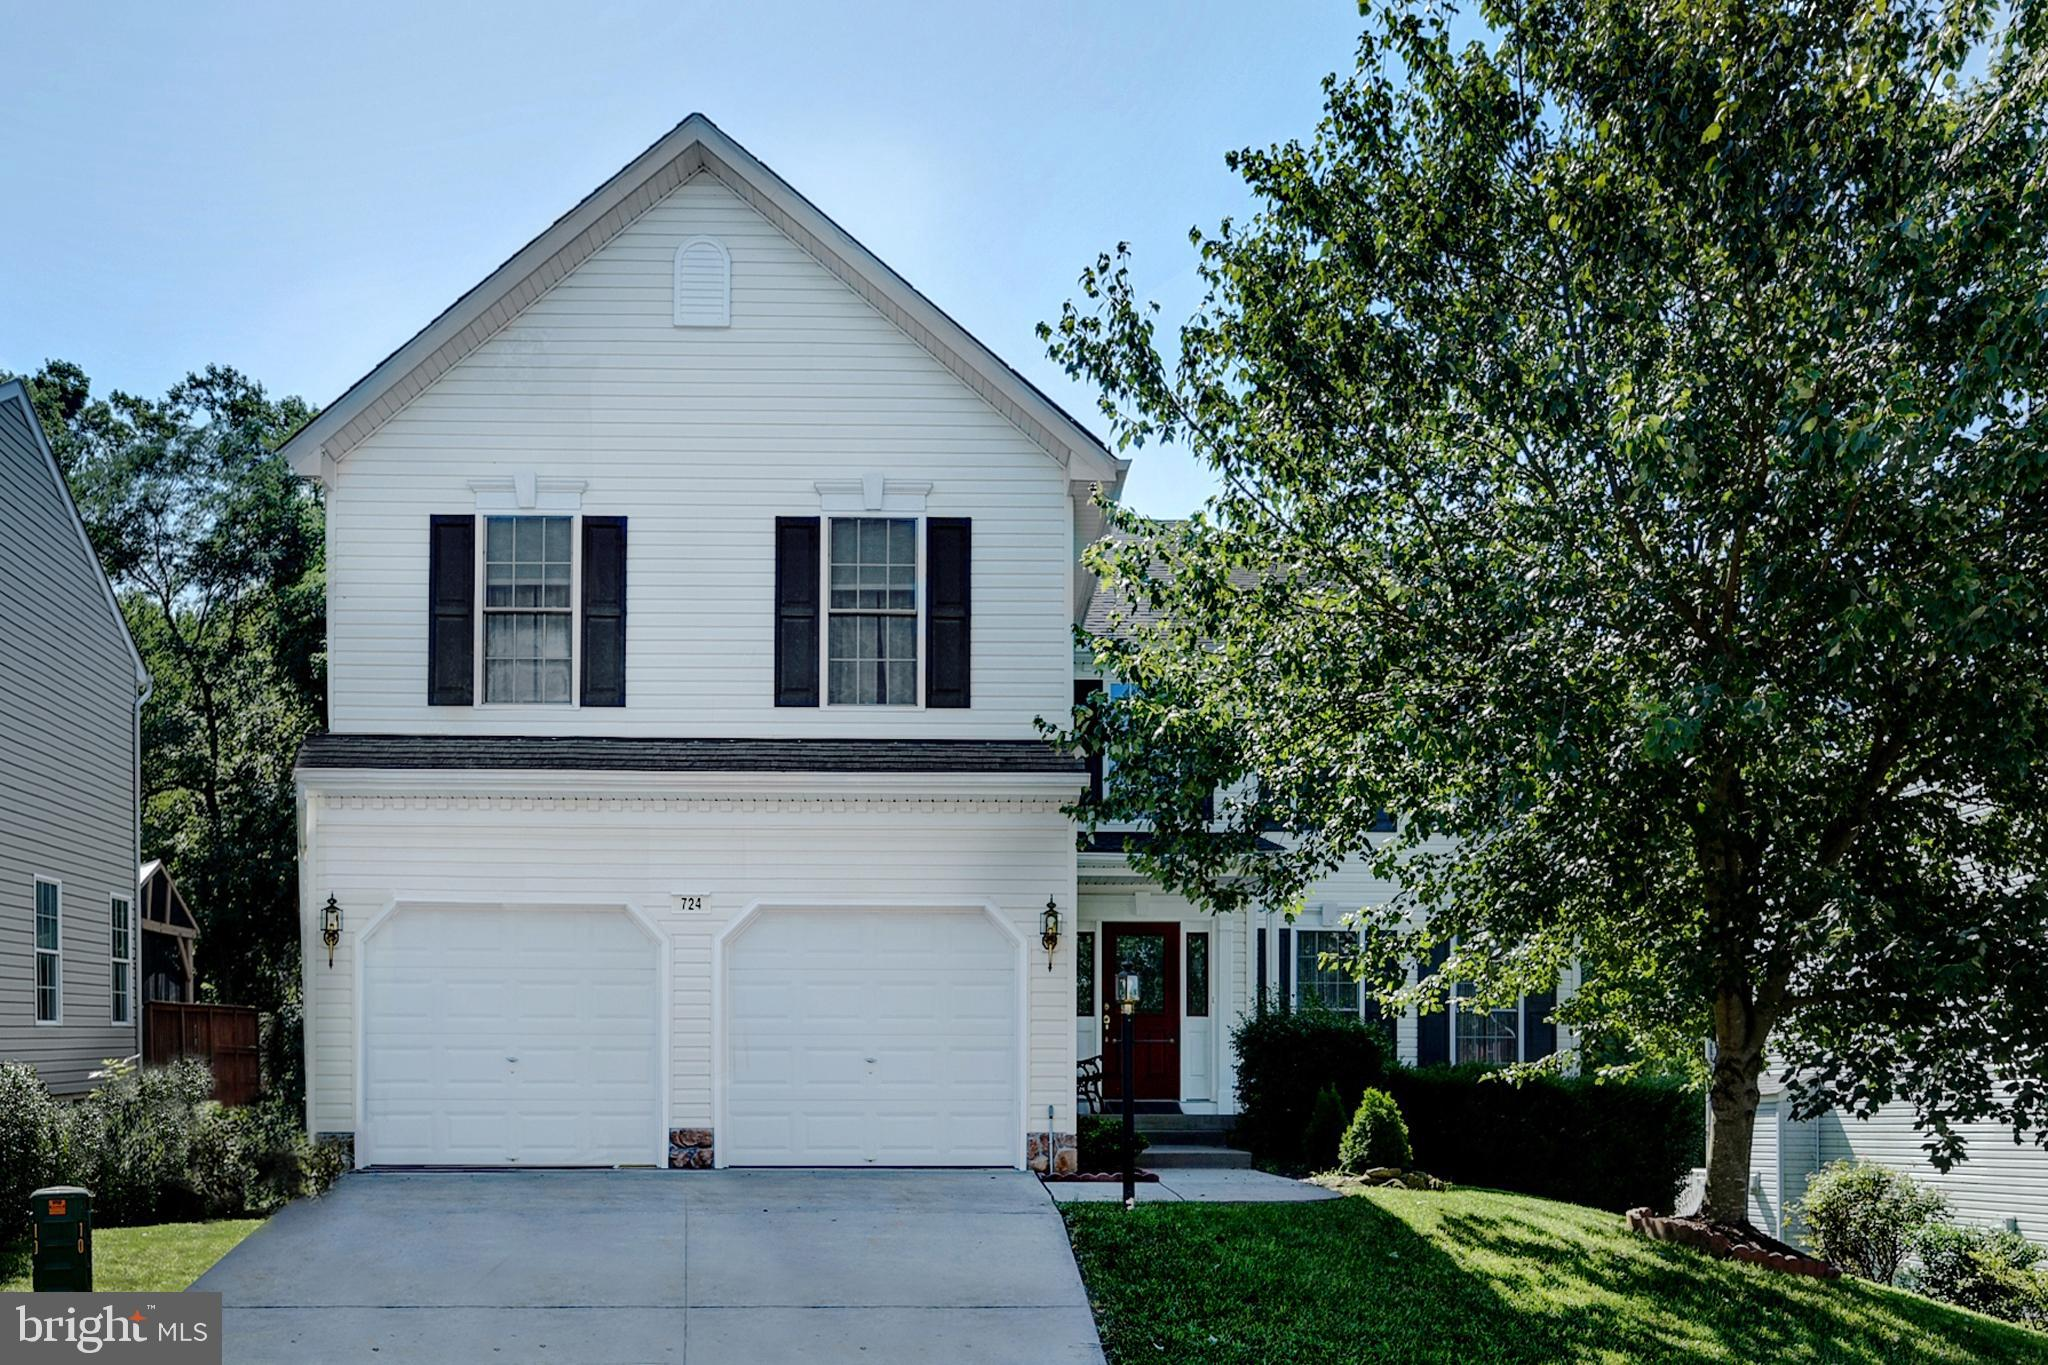 724 CONCORD POINT DRIVE, PERRYVILLE, MD 21903